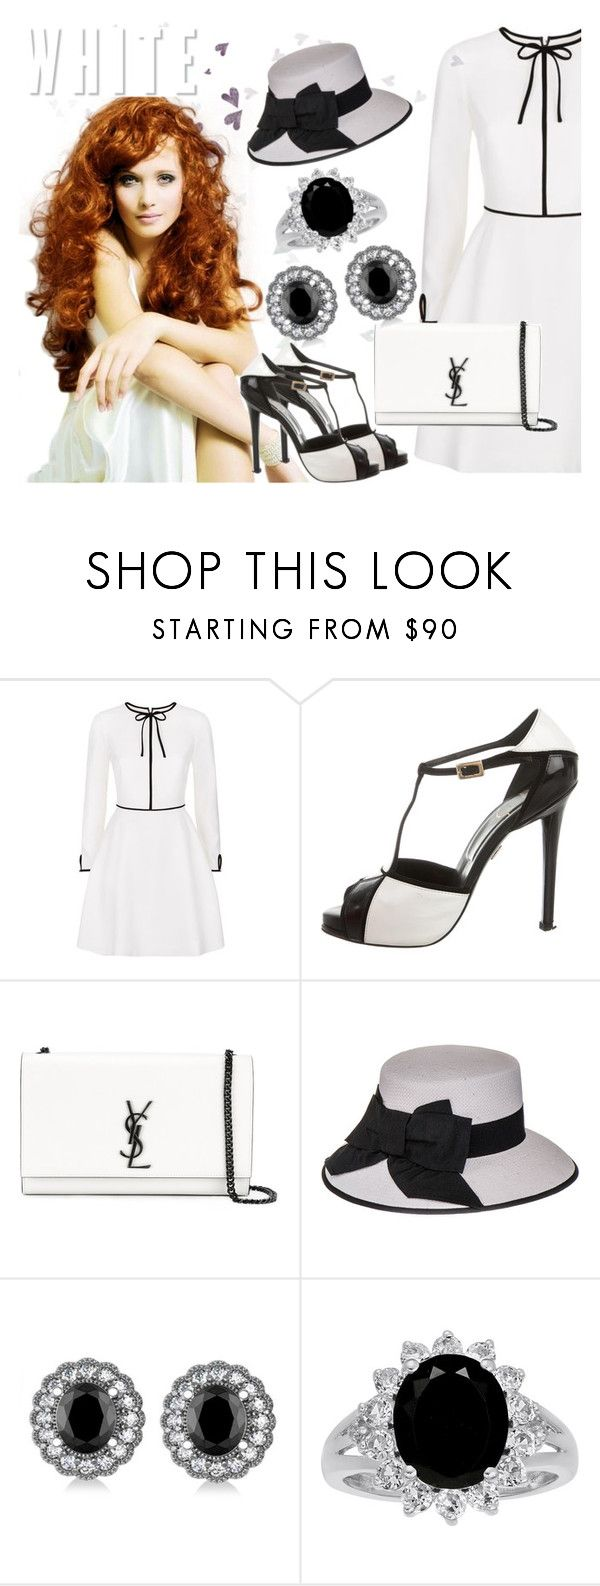 """Bright White Light"" by lullulu ❤ liked on Polyvore featuring Ted Baker, Roger Vivier, Yves Saint Laurent, Black and Allurez"